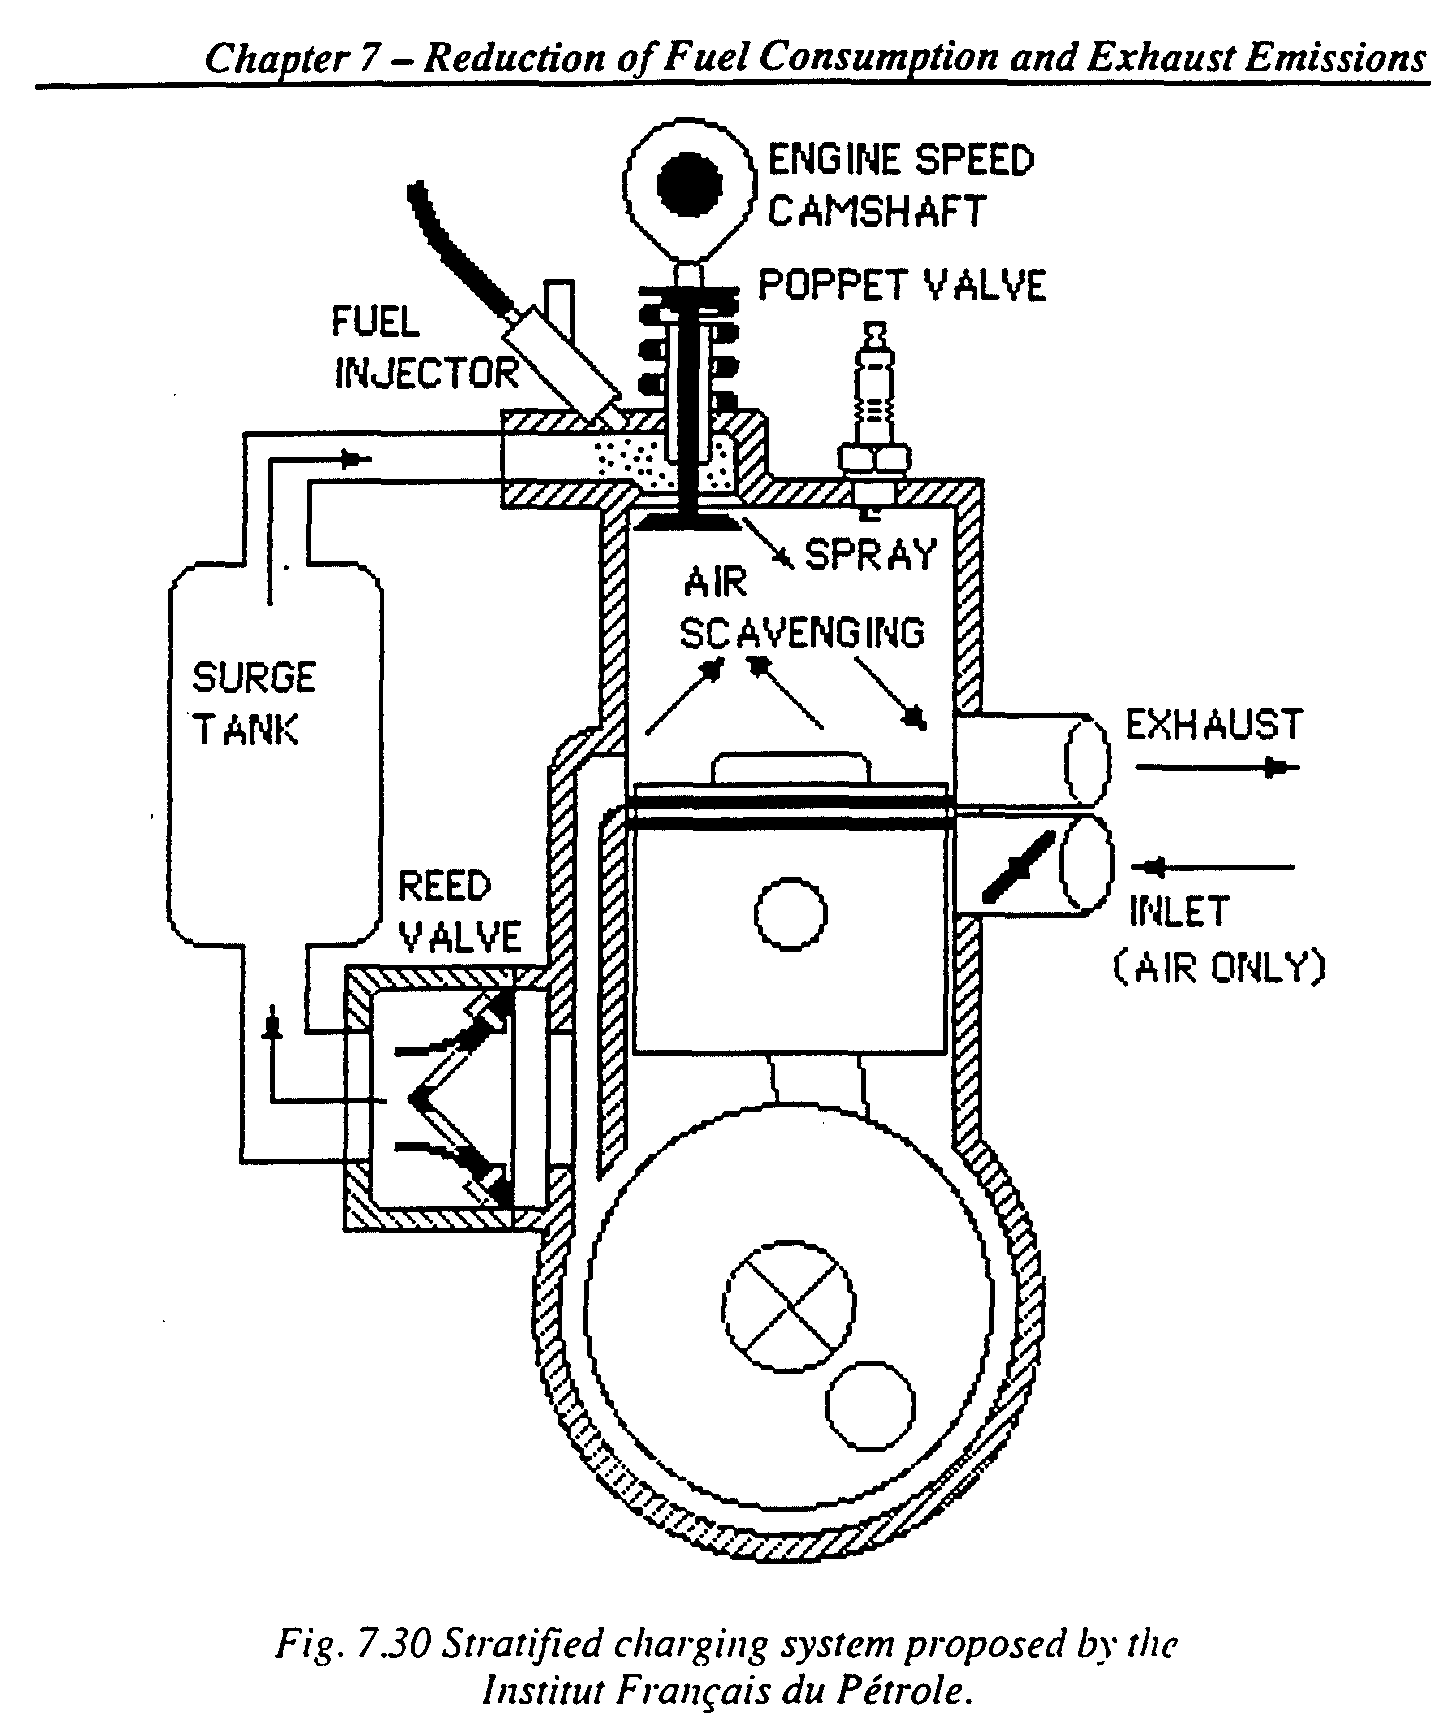 6 Hp Teseh Engine Diagram additionally Tecumseh Small Engine Carburetor Diagram moreover Teseh Small Engine Parts Diagram likewise Briggs Stratton Engine Diagram 6 5 moreover 6 5 Hp Toro Lawn Mower Parts Model. on teseh 1 2 hp engine